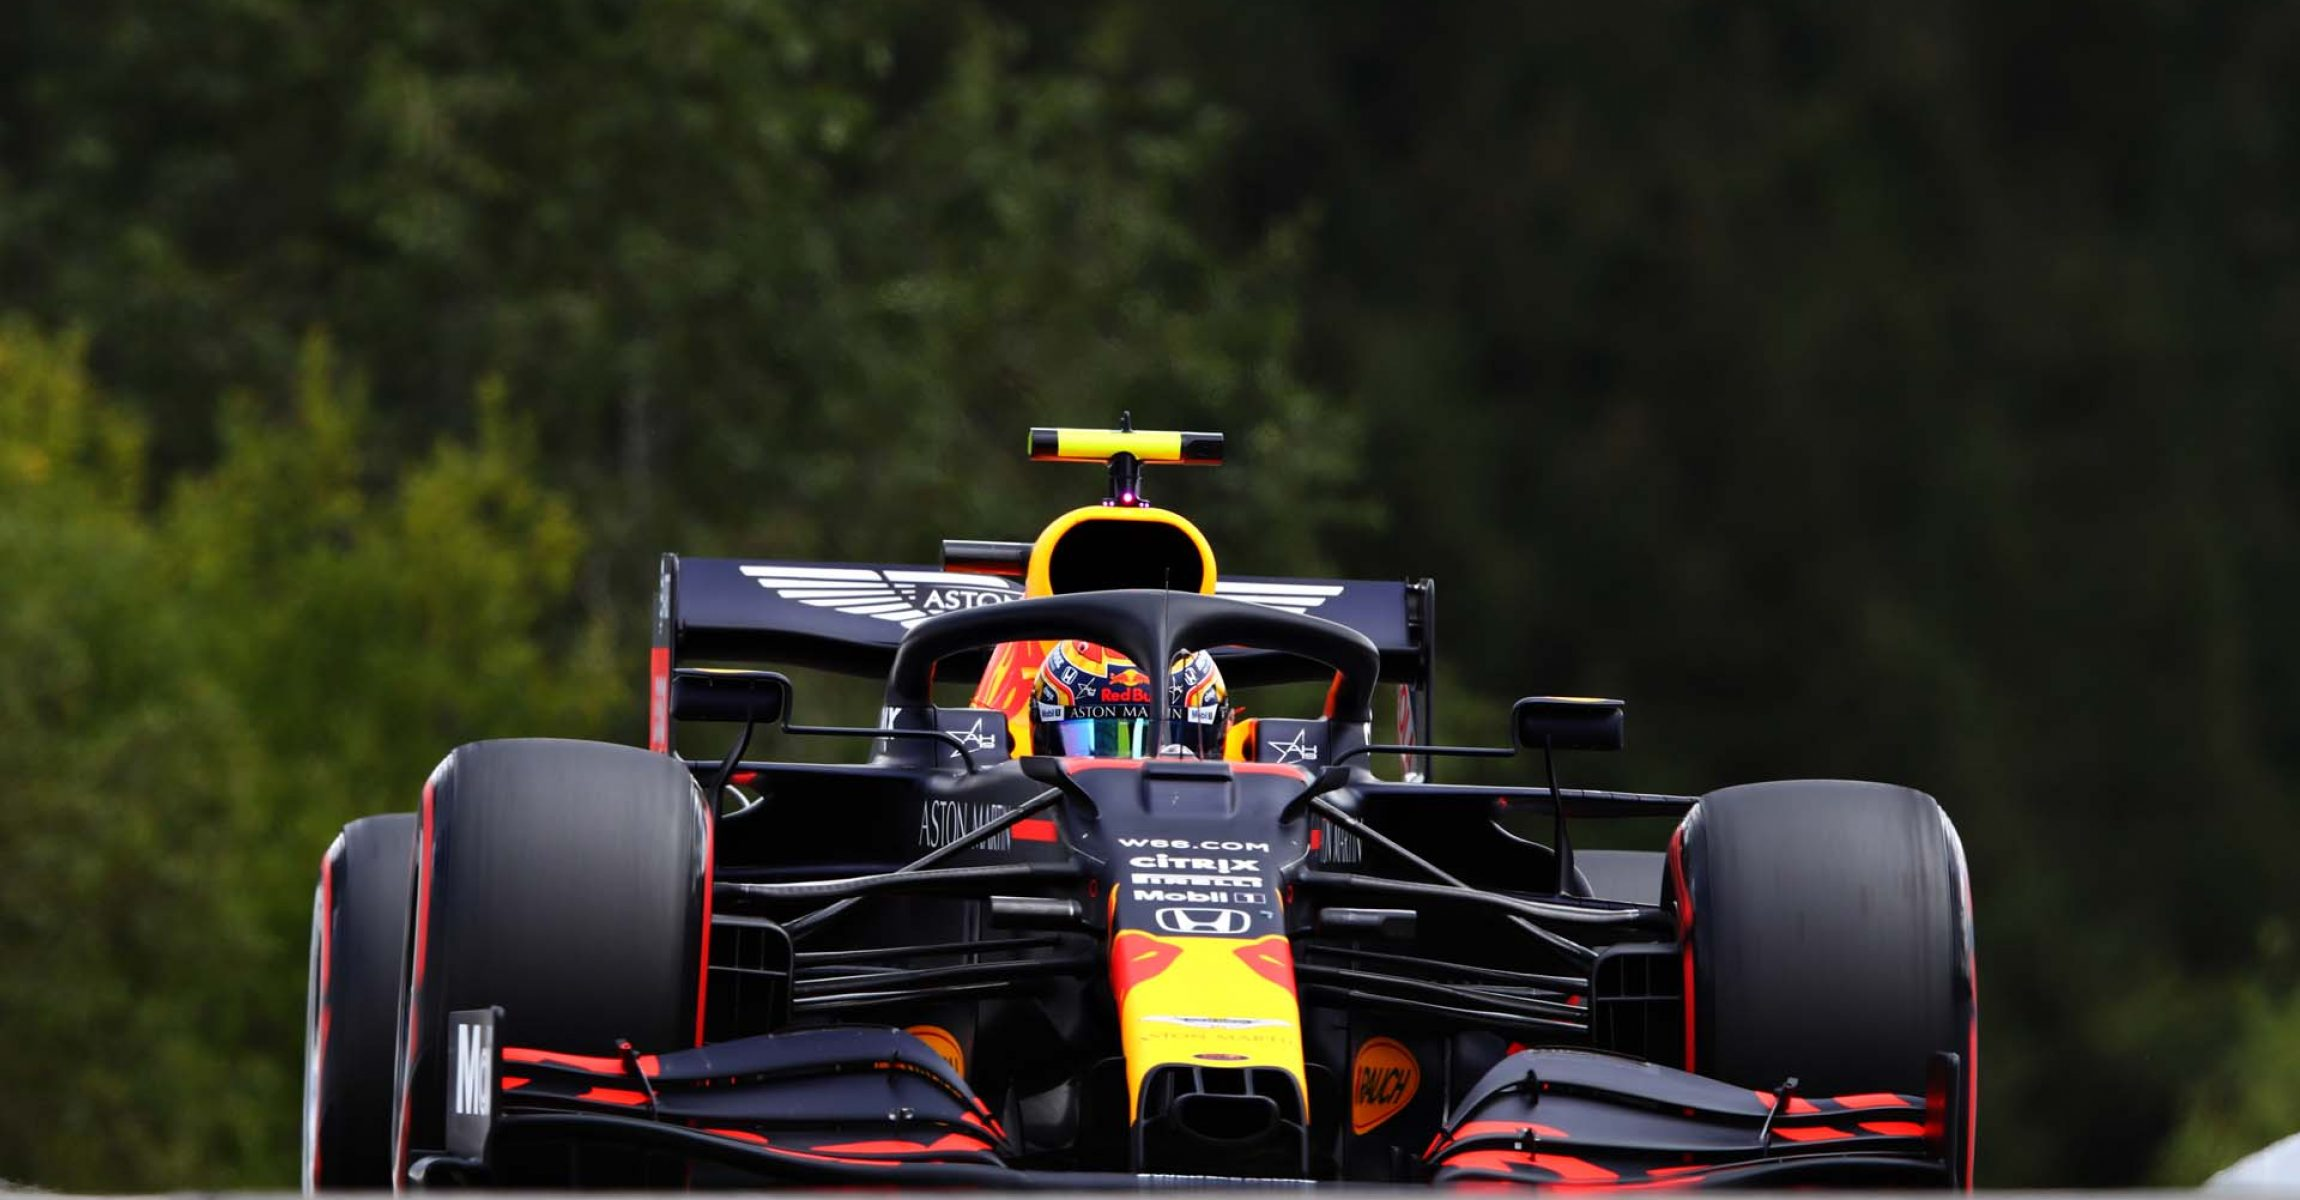 SPA, BELGIUM - AUGUST 29: Alexander Albon of Thailand driving the (23) Aston Martin Red Bull Racing RB16 drives on track during qualifying for the F1 Grand Prix of Belgium at Circuit de Spa-Francorchamps on August 29, 2020 in Spa, Belgium. (Photo by Mark Thompson/Getty Images)